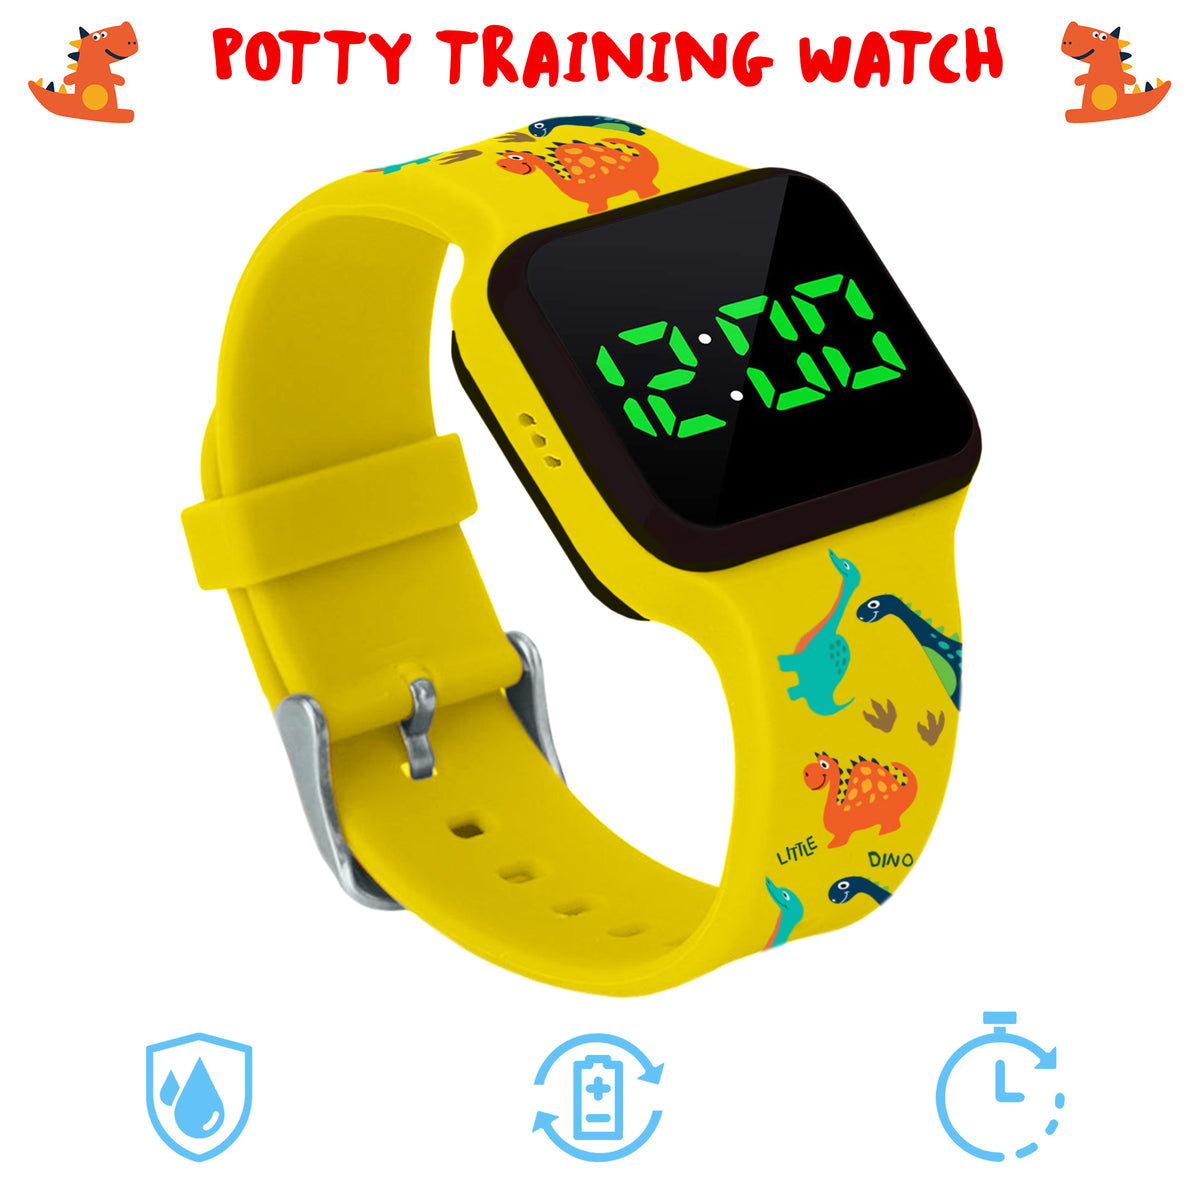 Potty Training Timer Watch Yellow Dinosaur with Flashing Lights and Music Tones